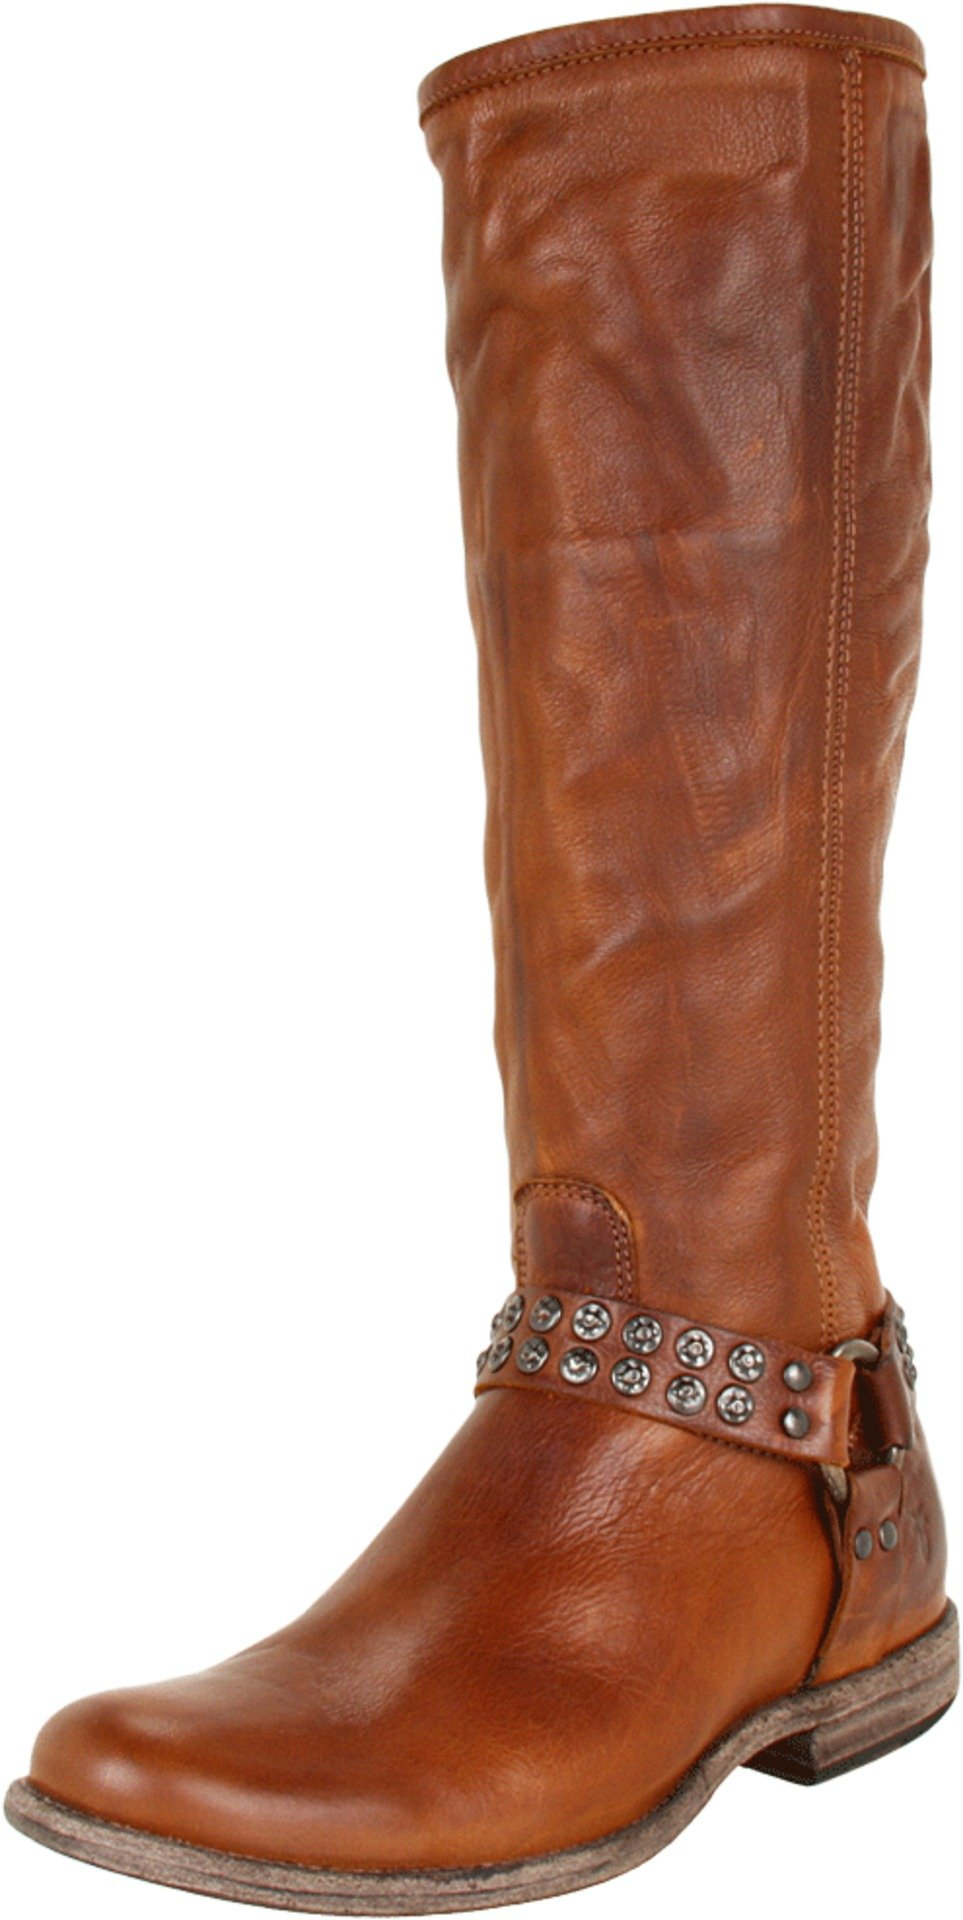 FRYE Women's Phillip Studded Harness Tall Boot, Cognac Soft Vintage Leather, 8 M US